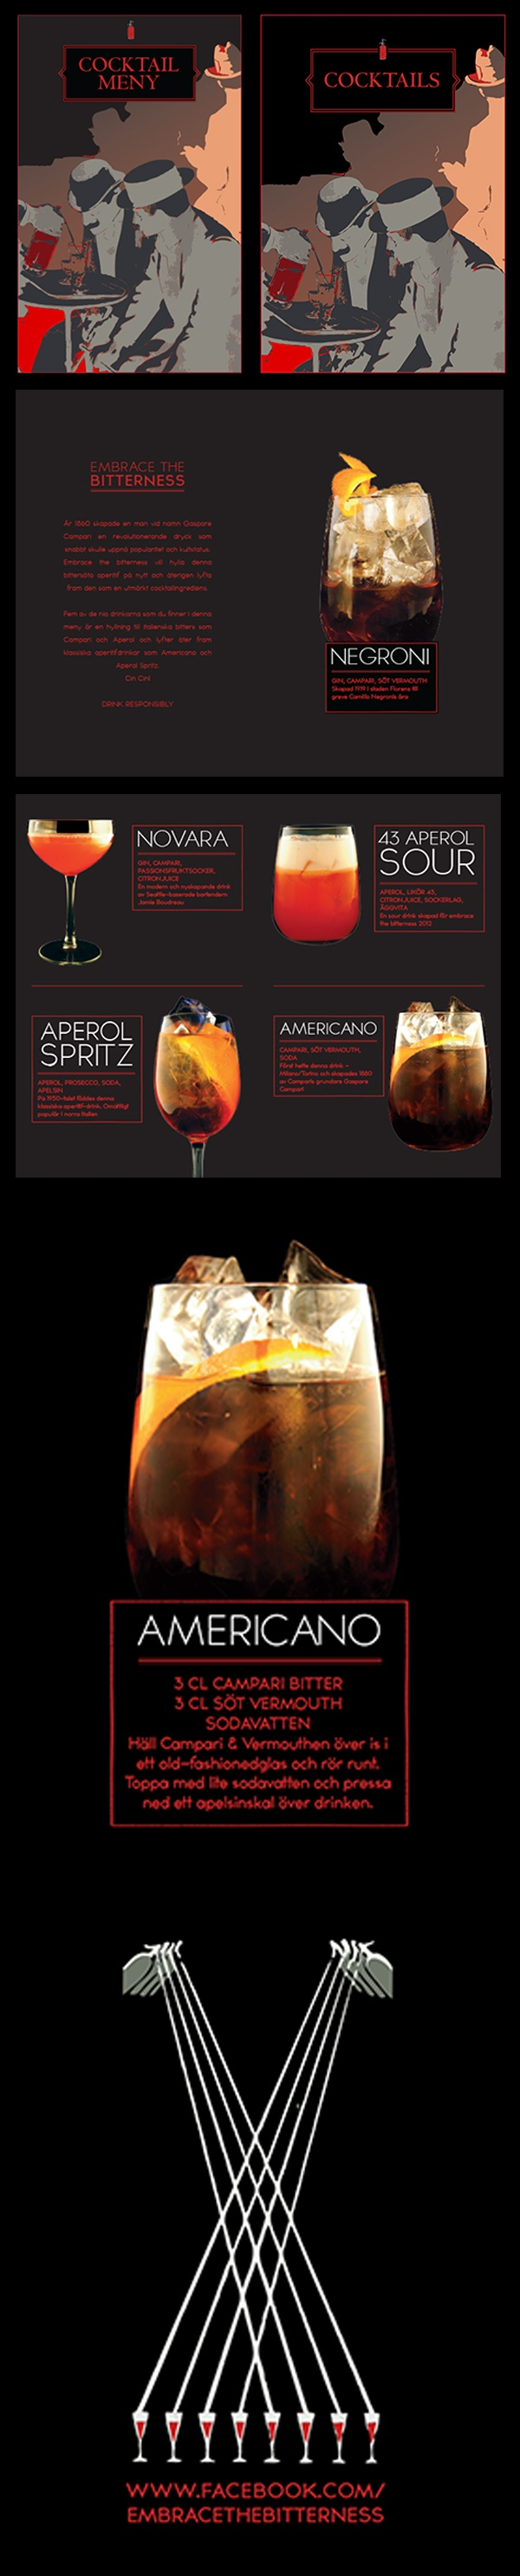 Graphic Design | CLIENT: Campari Sweden | AGENCY: Liquid Mngm | DESCRIPTION: Cocktail menu and cards for events in Sweden promoting the culture of Bitter and Aperitvo made of Campari.